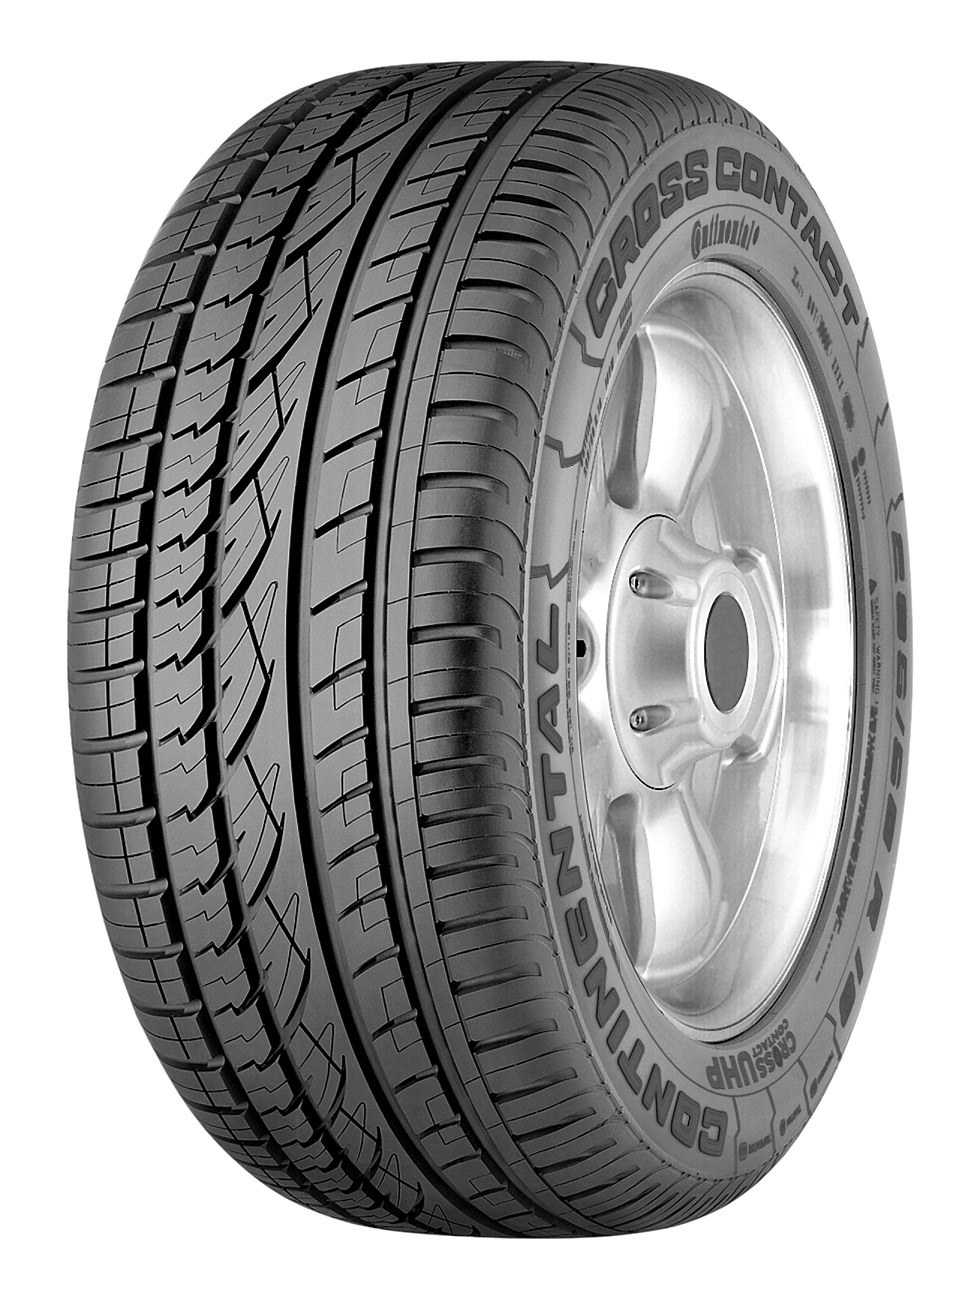 Continental's 4×4 tyre range has market covered